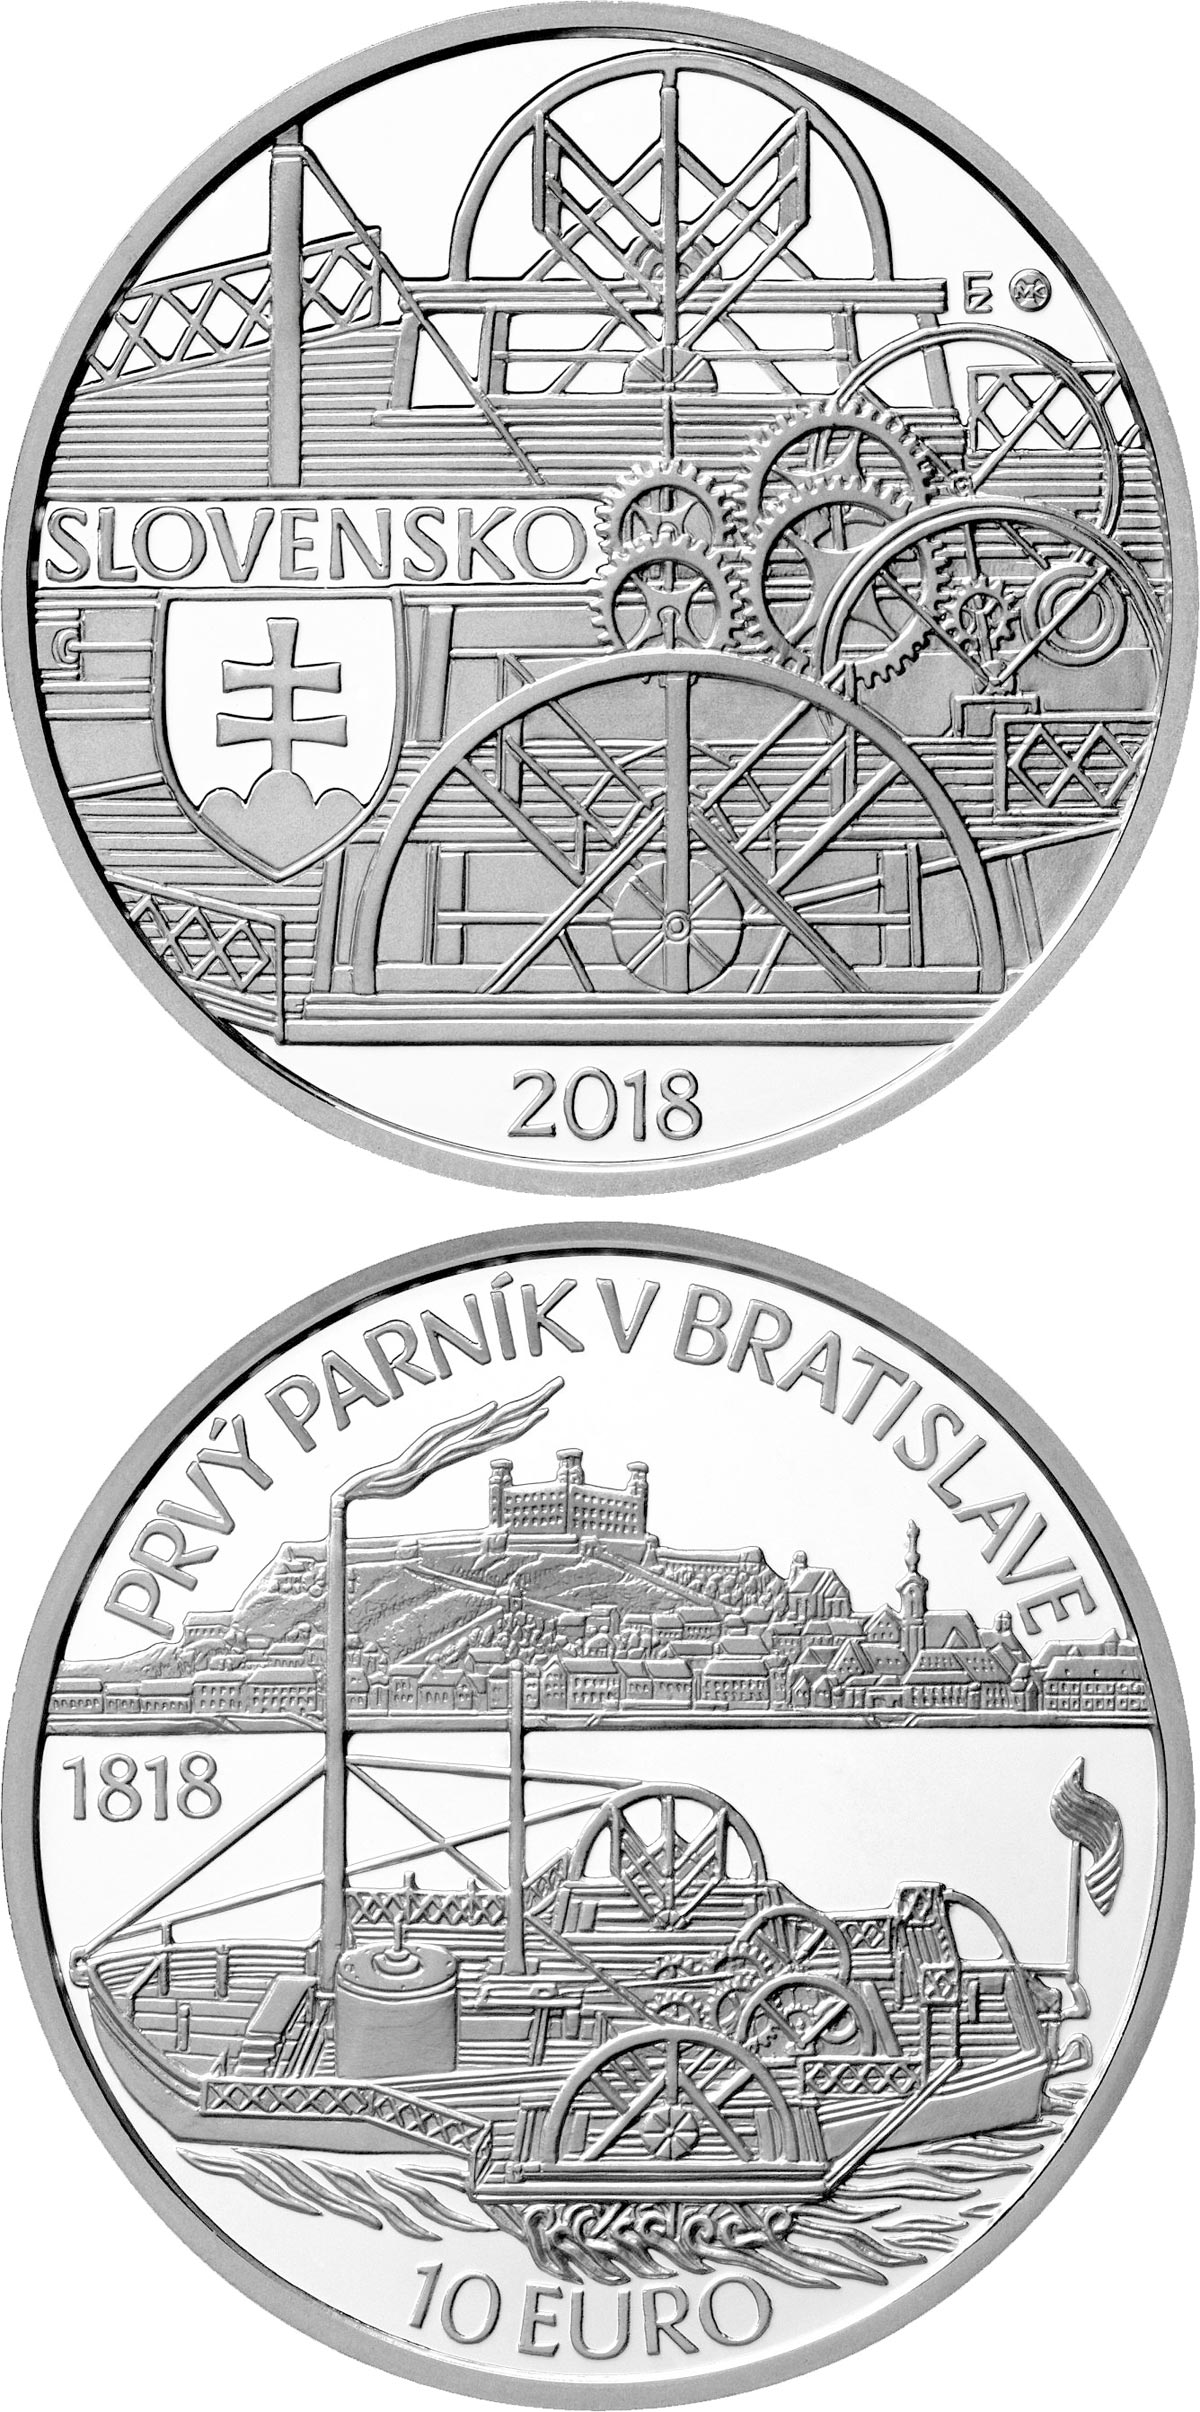 Image of 10 euro coin - Anniversary of the first sailing of a steamer on the Danube River in Bratislava | Slovakia 2018.  The Silver coin is of Proof, BU quality.